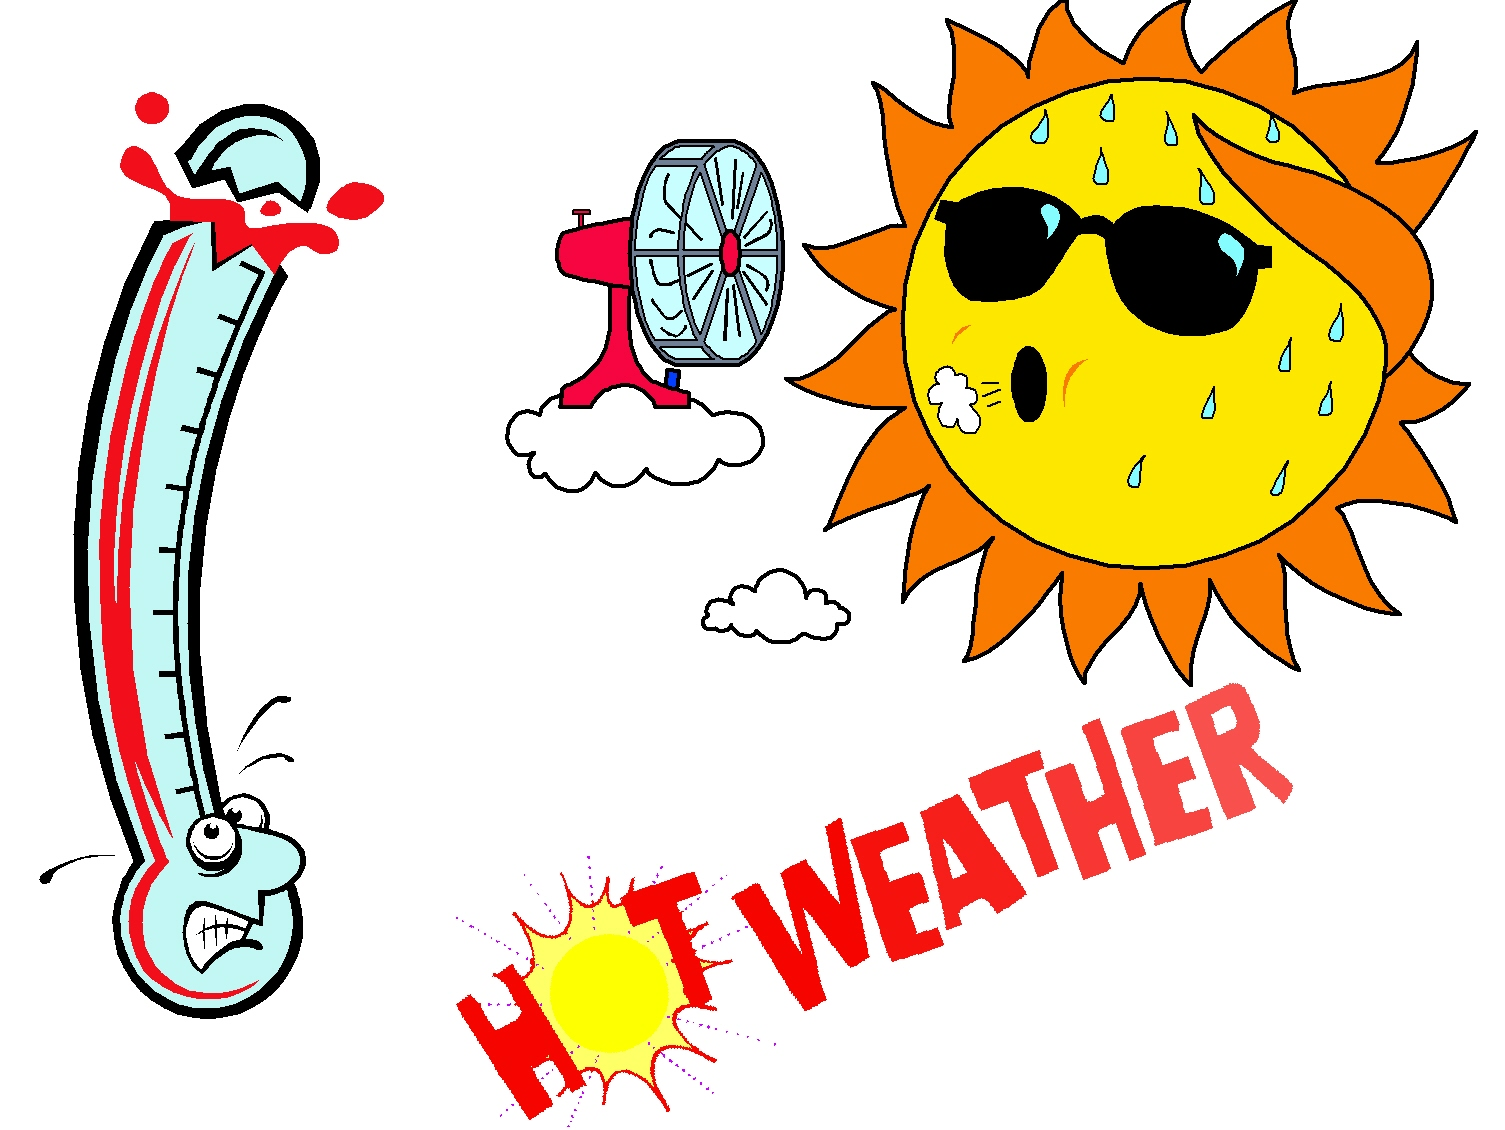 Clipart heat wave image free stock Free Extreme Heat Cliparts, Download Free Clip Art, Free Clip Art on ... image free stock